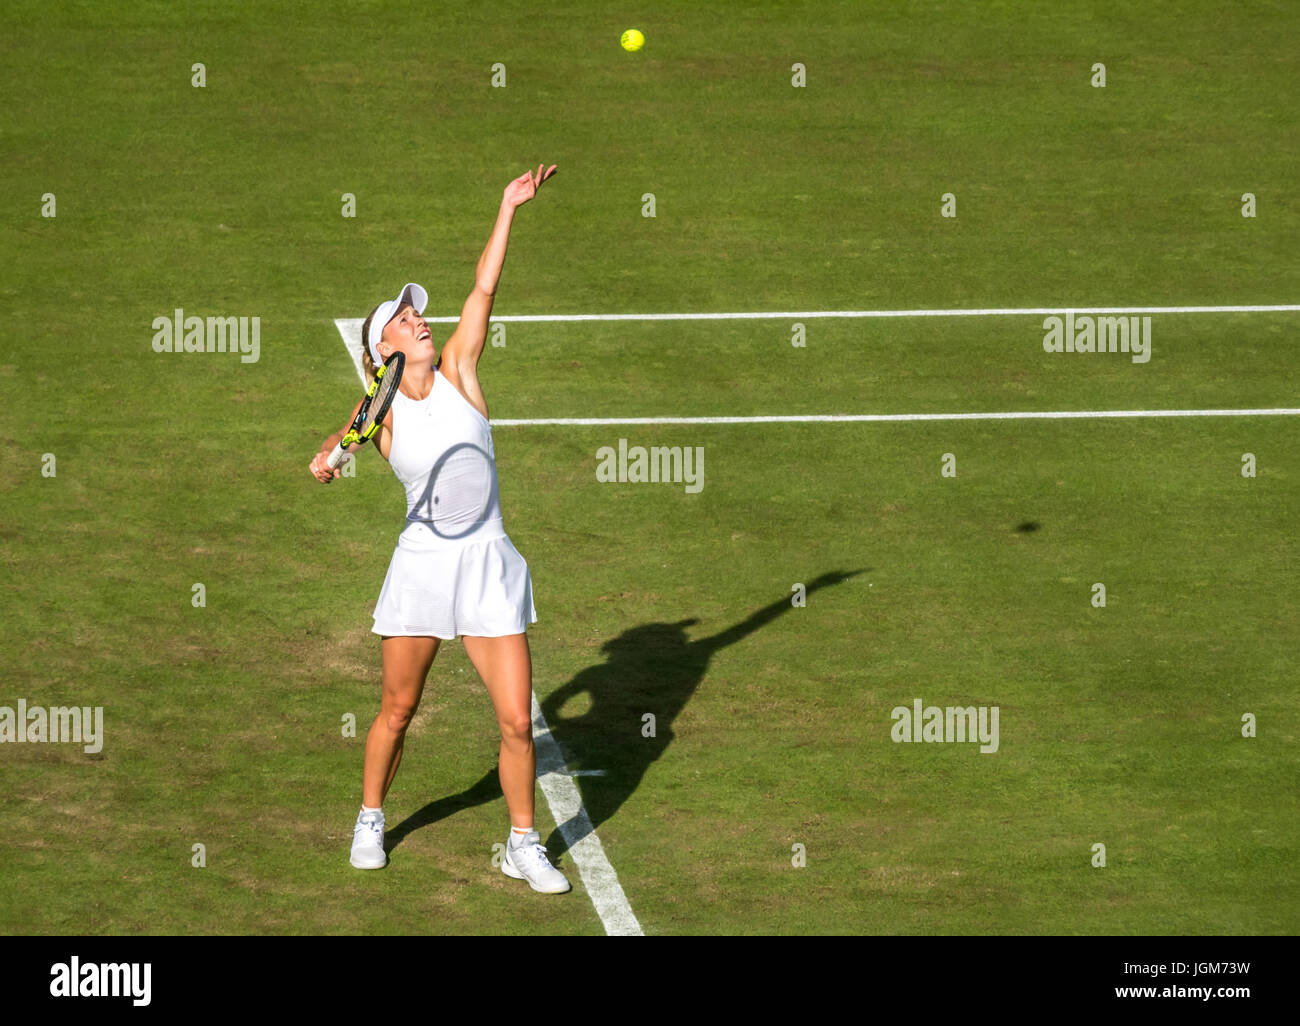 Caroline Wozniacki serving on Centre Court, Wimbledon 2017, ladies singles match, grand slam tennis champIonship, - Stock Image